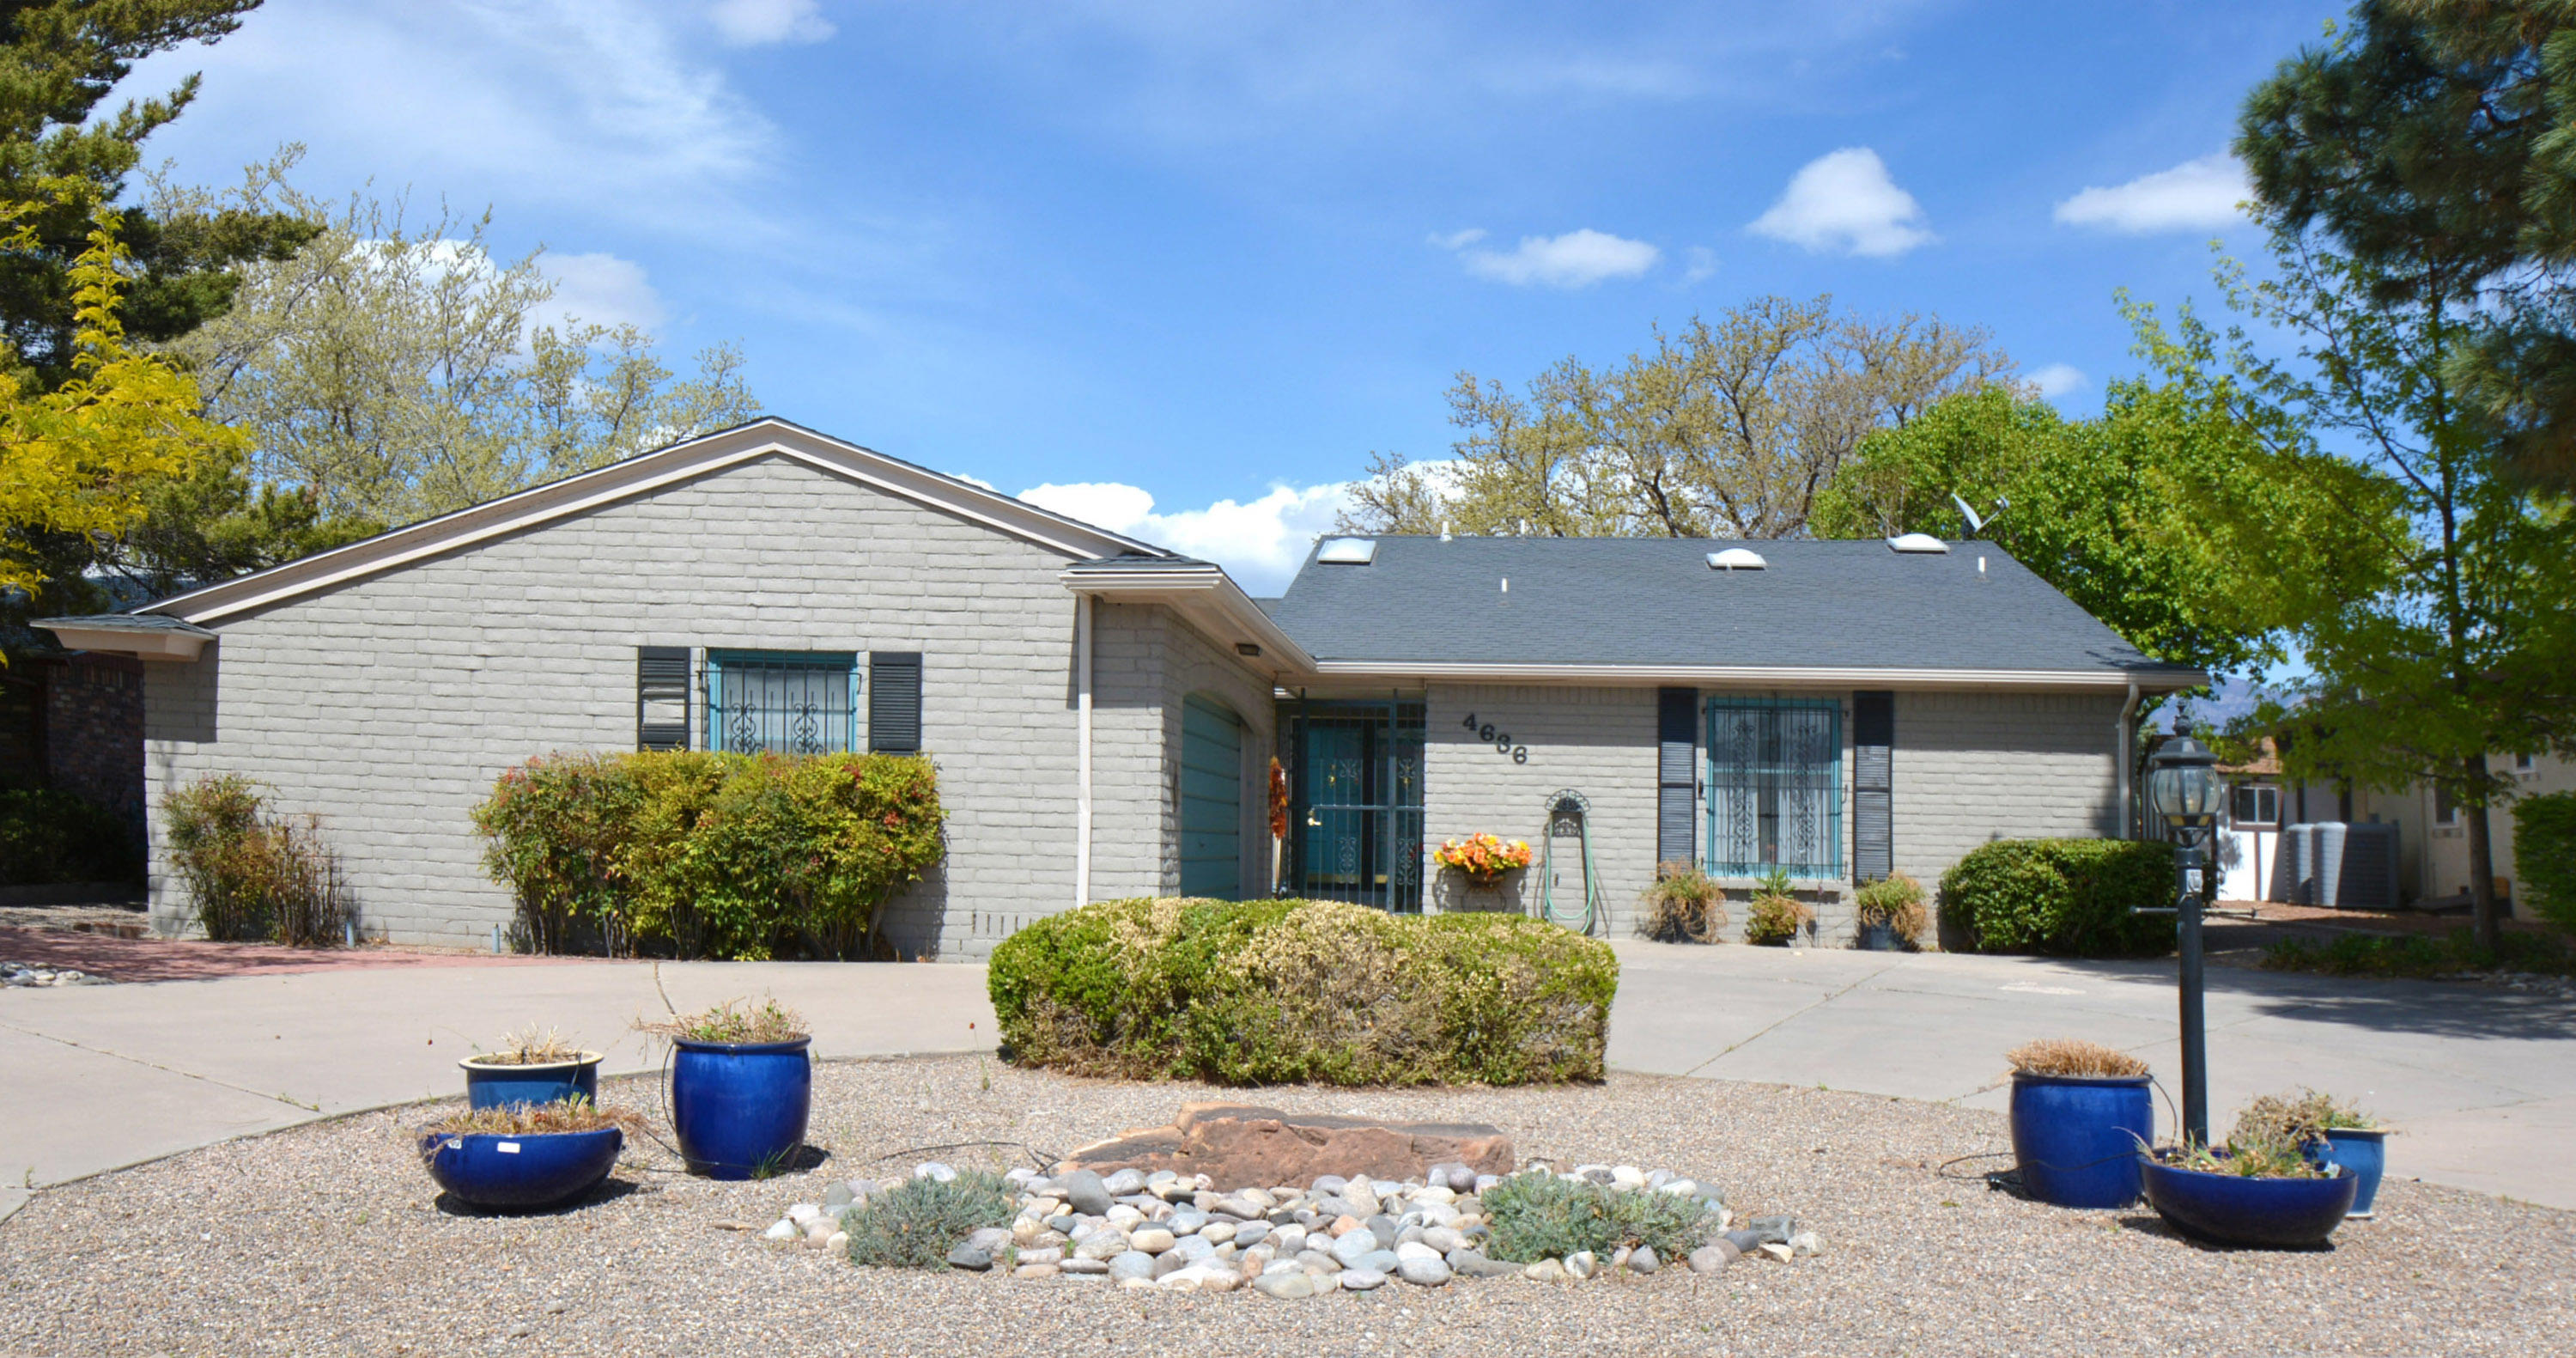 Lovely Updated home on large lot with Fabulous mountain views. 3 bedrooms plus an office. Many updates include new CFA Heat and Refrigerated Air unit 2020, kitchen remodel in 2018, hall bath remodel in 2020 and master bath remodel 2012. New stucco 2018. New roof 2010.  Extra blown in insulation in ceilings. 3 sky lights. Walk-in closets in 2 bedrooms plus large bonus hall closet. Security bars with bedroom releases. Large finished garage, Circular driveway. Designer landscaping with brick lined walk-ways. Large covered back patio that is perfect for entertaining and appreciating the million dollar views of both the mountains and the Arroyo del Oso Golf Course.  Backyard vehicle access. This home has been lovingly maintained and is move in ready.